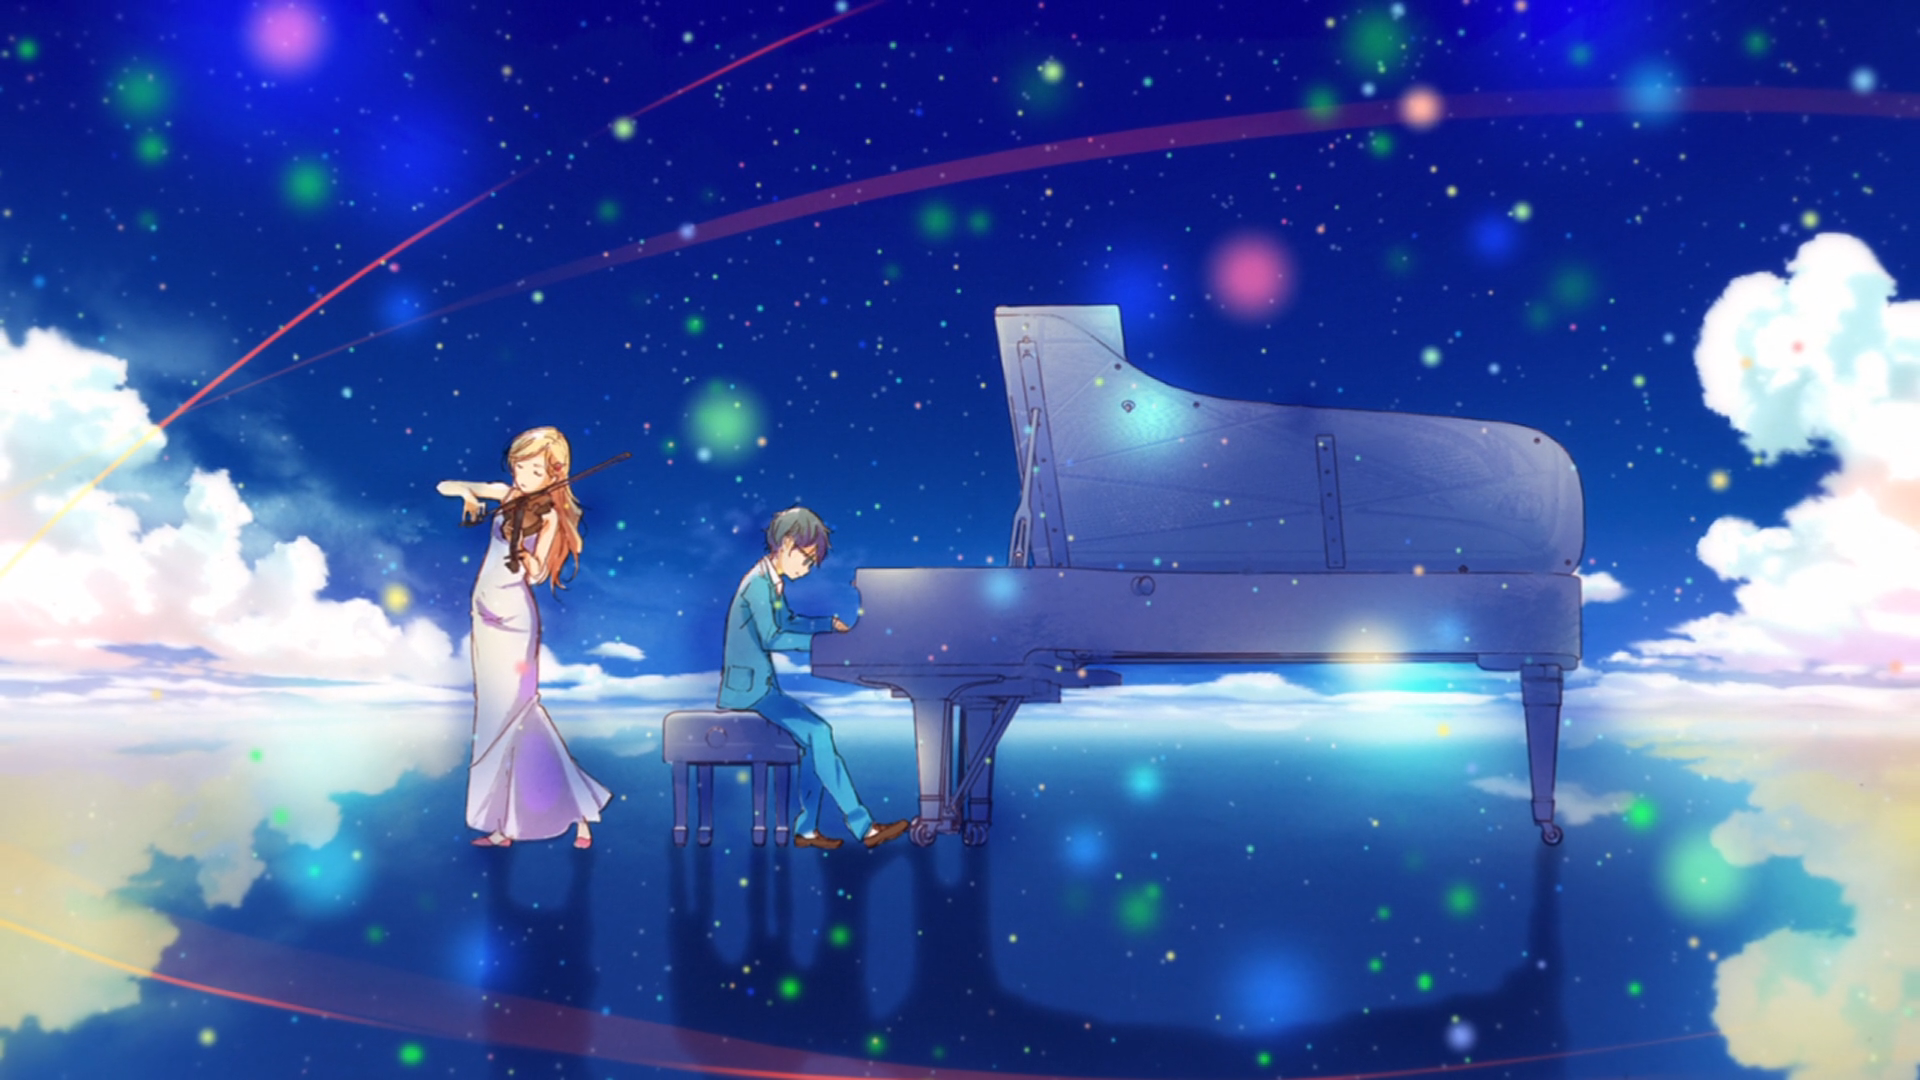 BennieBear27 images Your Lie in April HD wallpaper and background 1920x1080